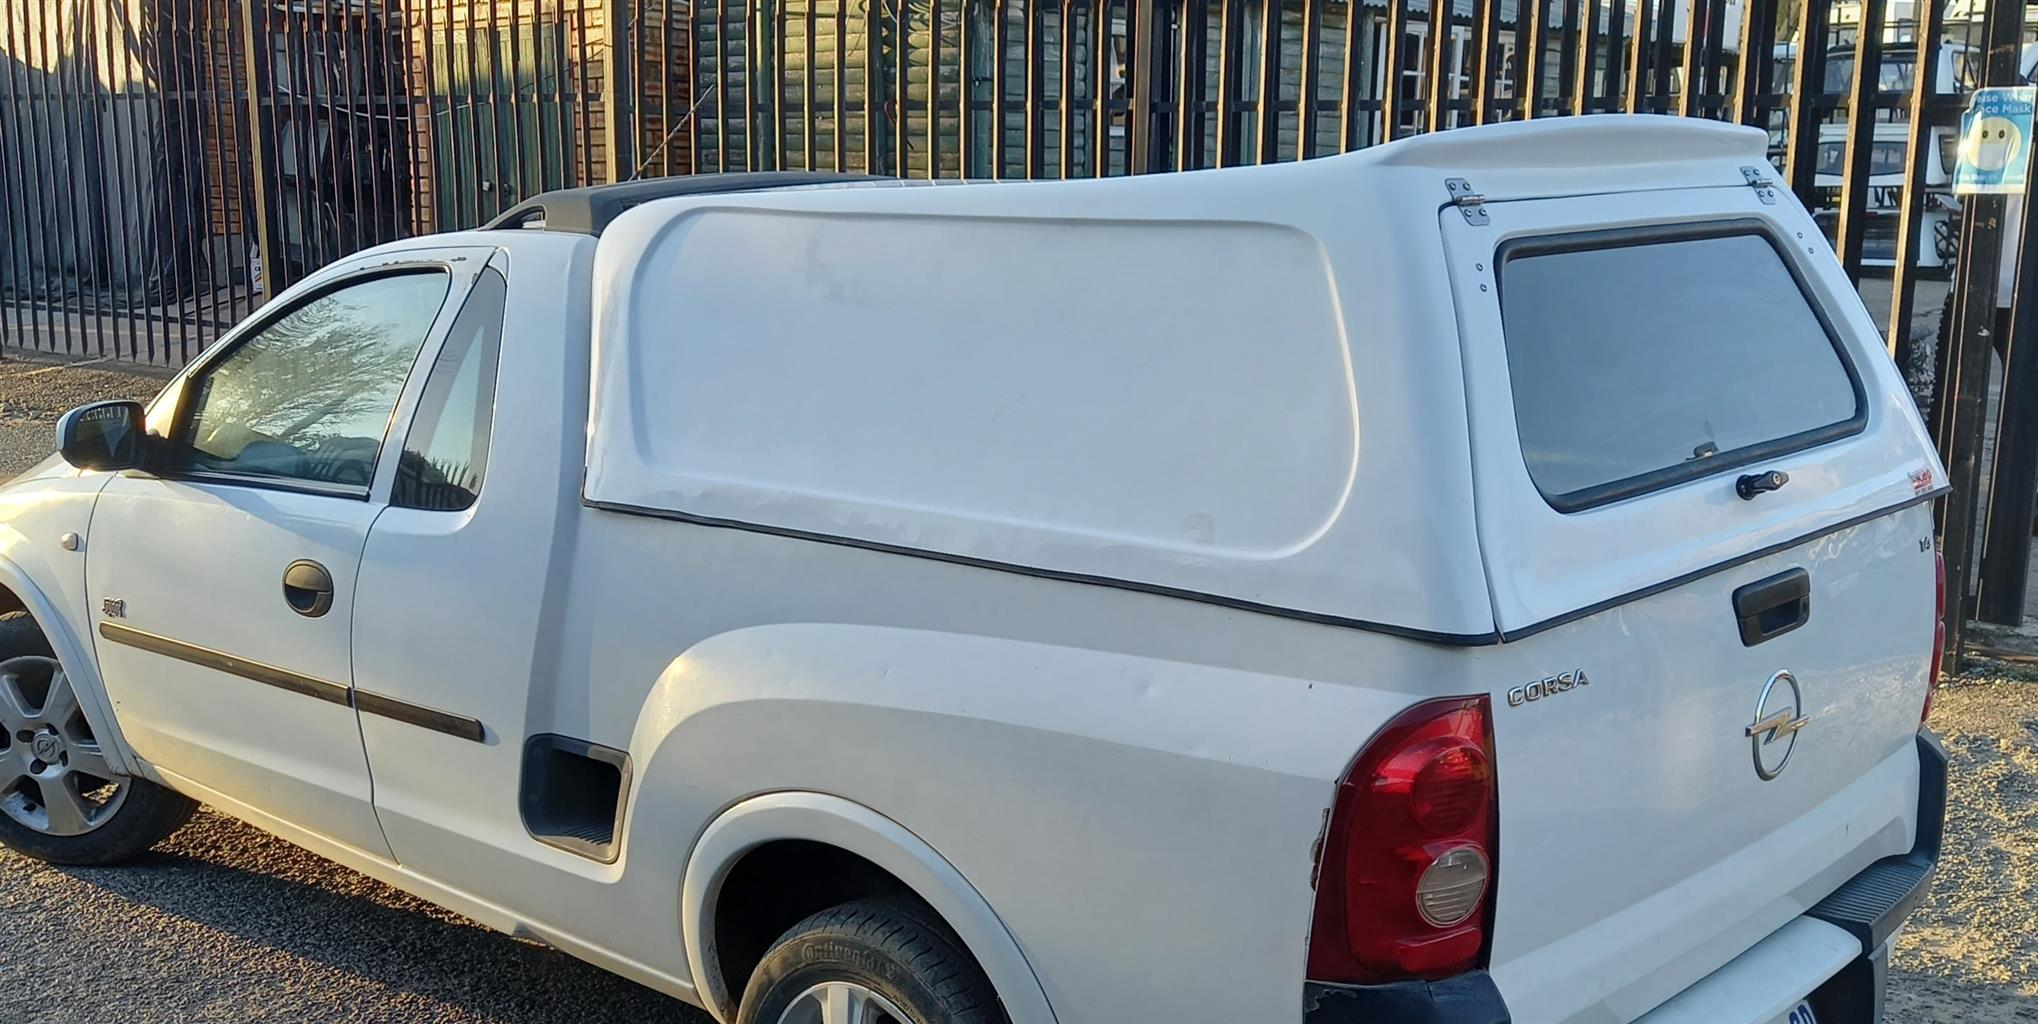 GC CORSA UTILITY BLINDSIDED CANOPY FOR SALE!!!!!!